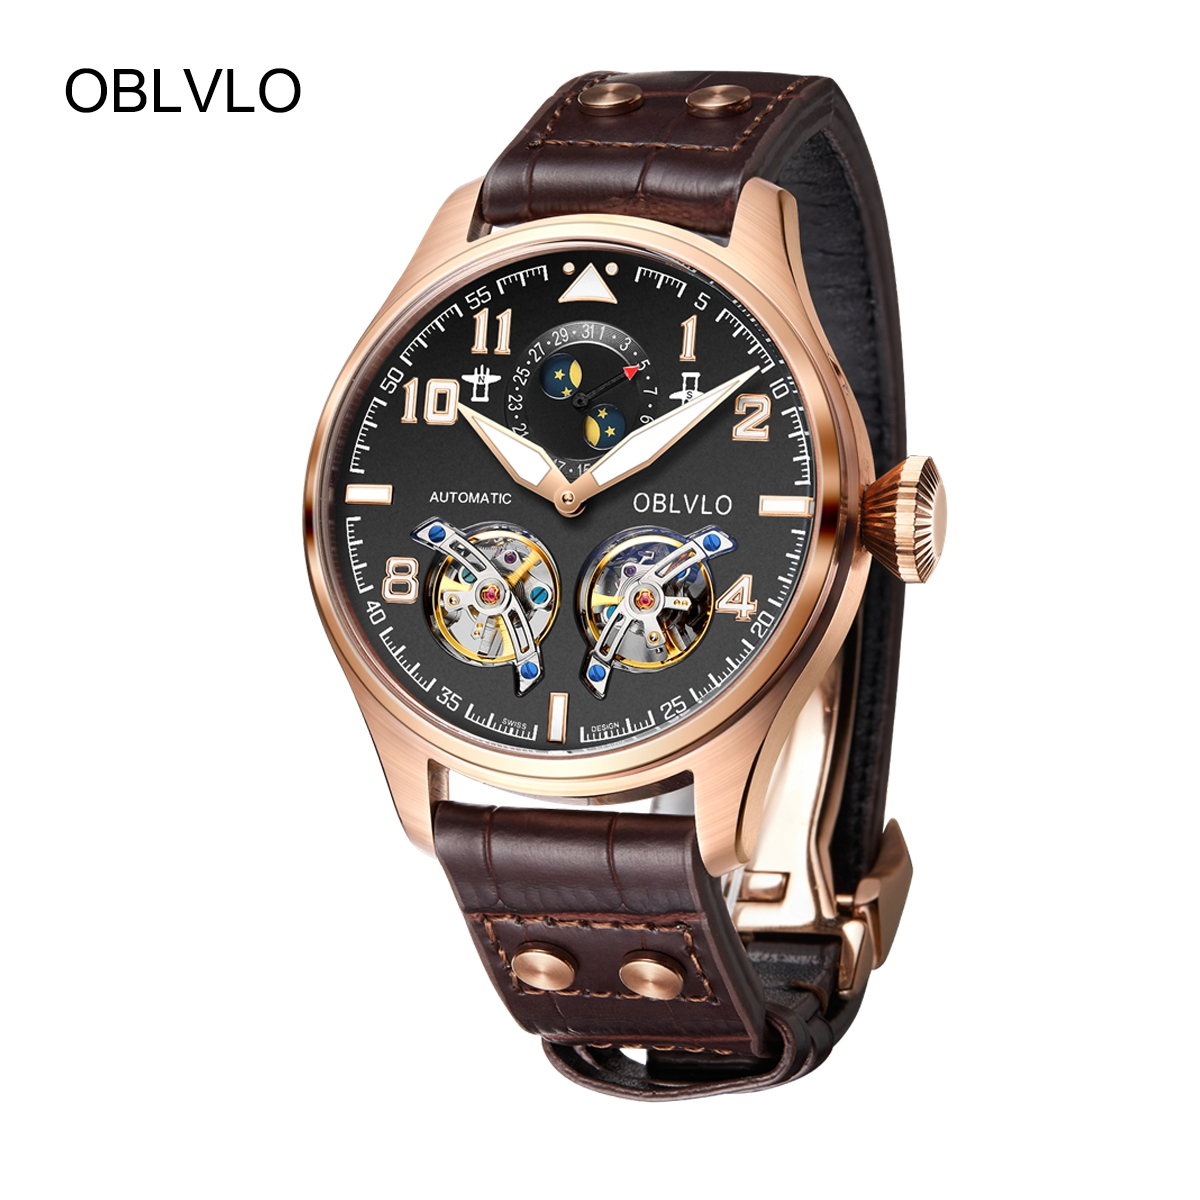 OBLVLO Luxury Mens Watches Rose Gold Automatic Watches Leather Strap Tourbillon Watch OBL8232-PBB